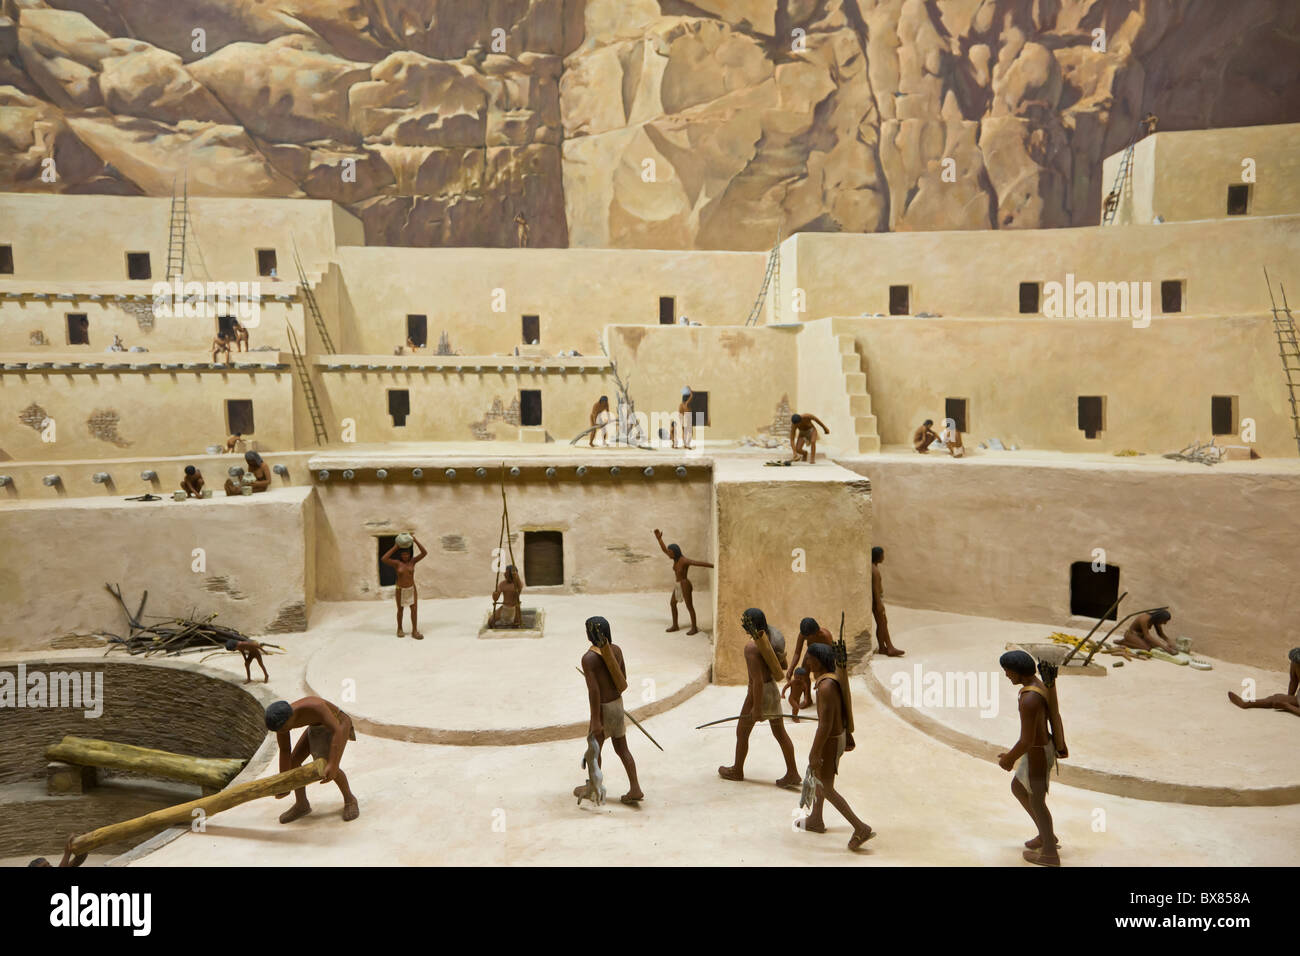 Diorama depicting Chacoan life at the Chaco Culture National Historical Park, New Mexico, USA. Stock Photo